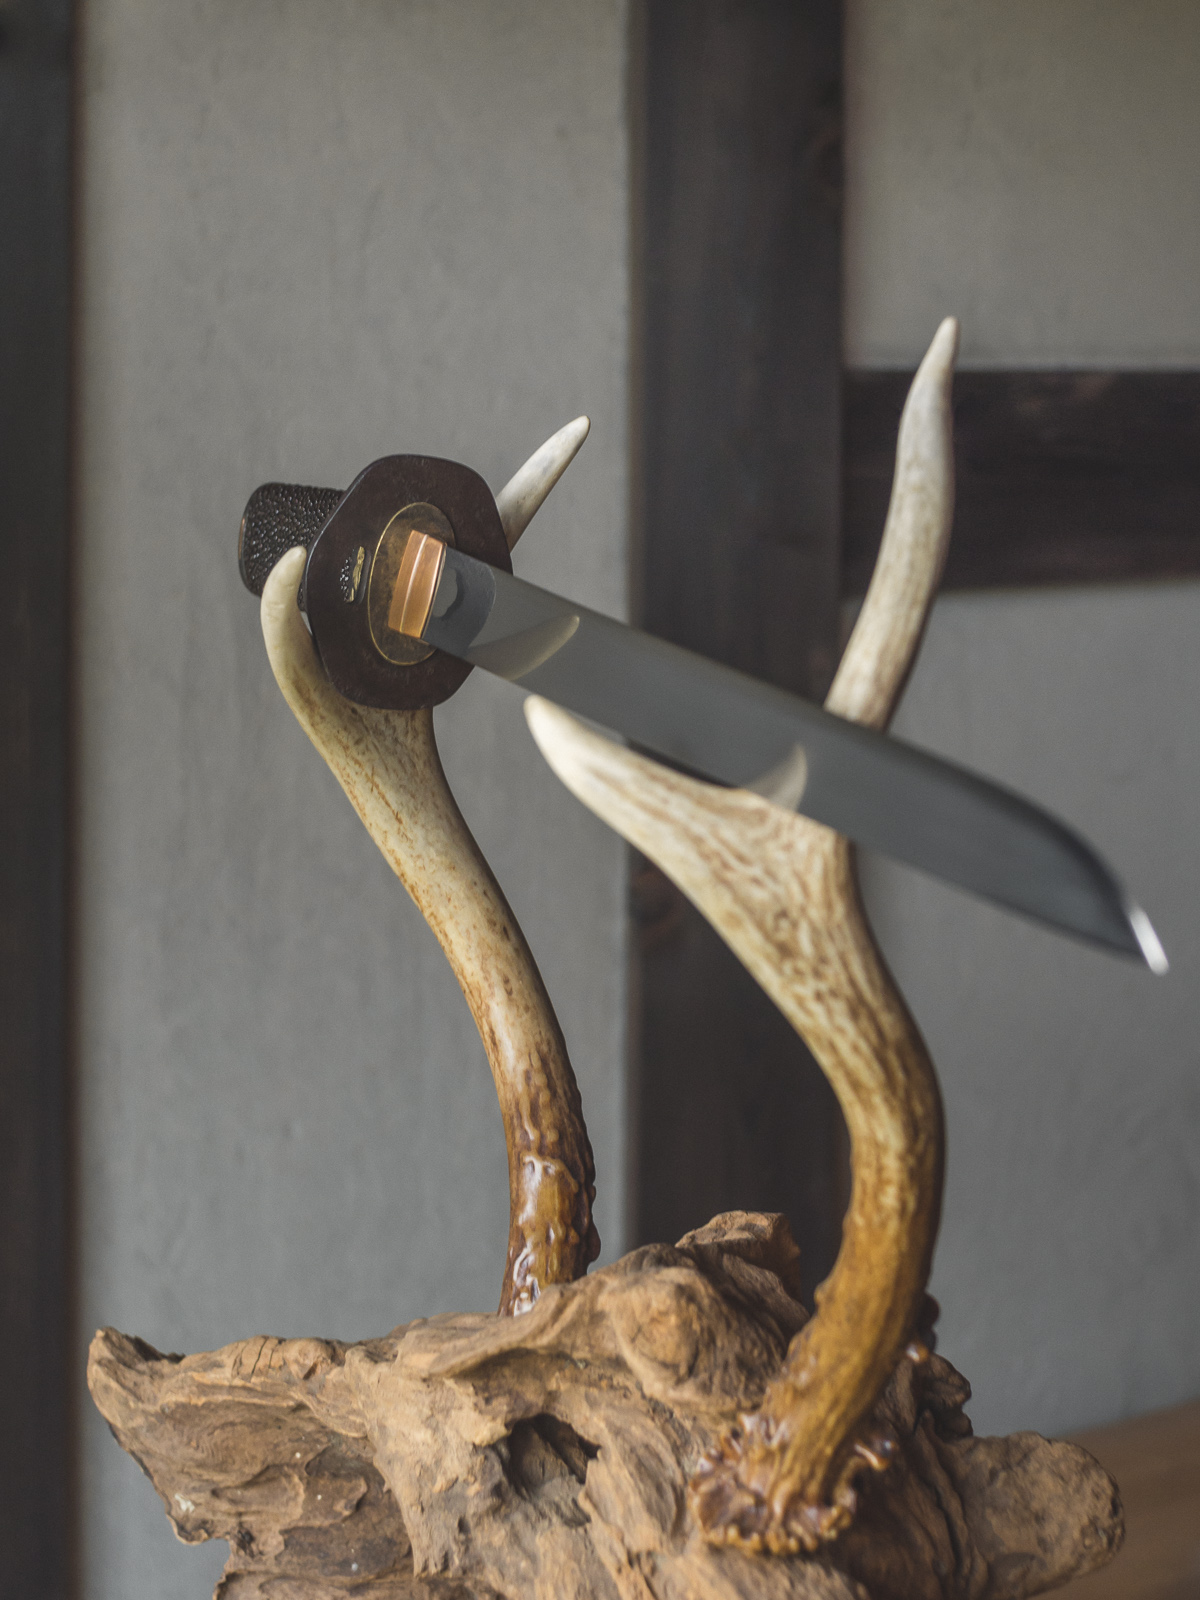 Island Blacksmith: Hand crafted tanto koshirae made from reclaimed and natural materials using traditional techniques